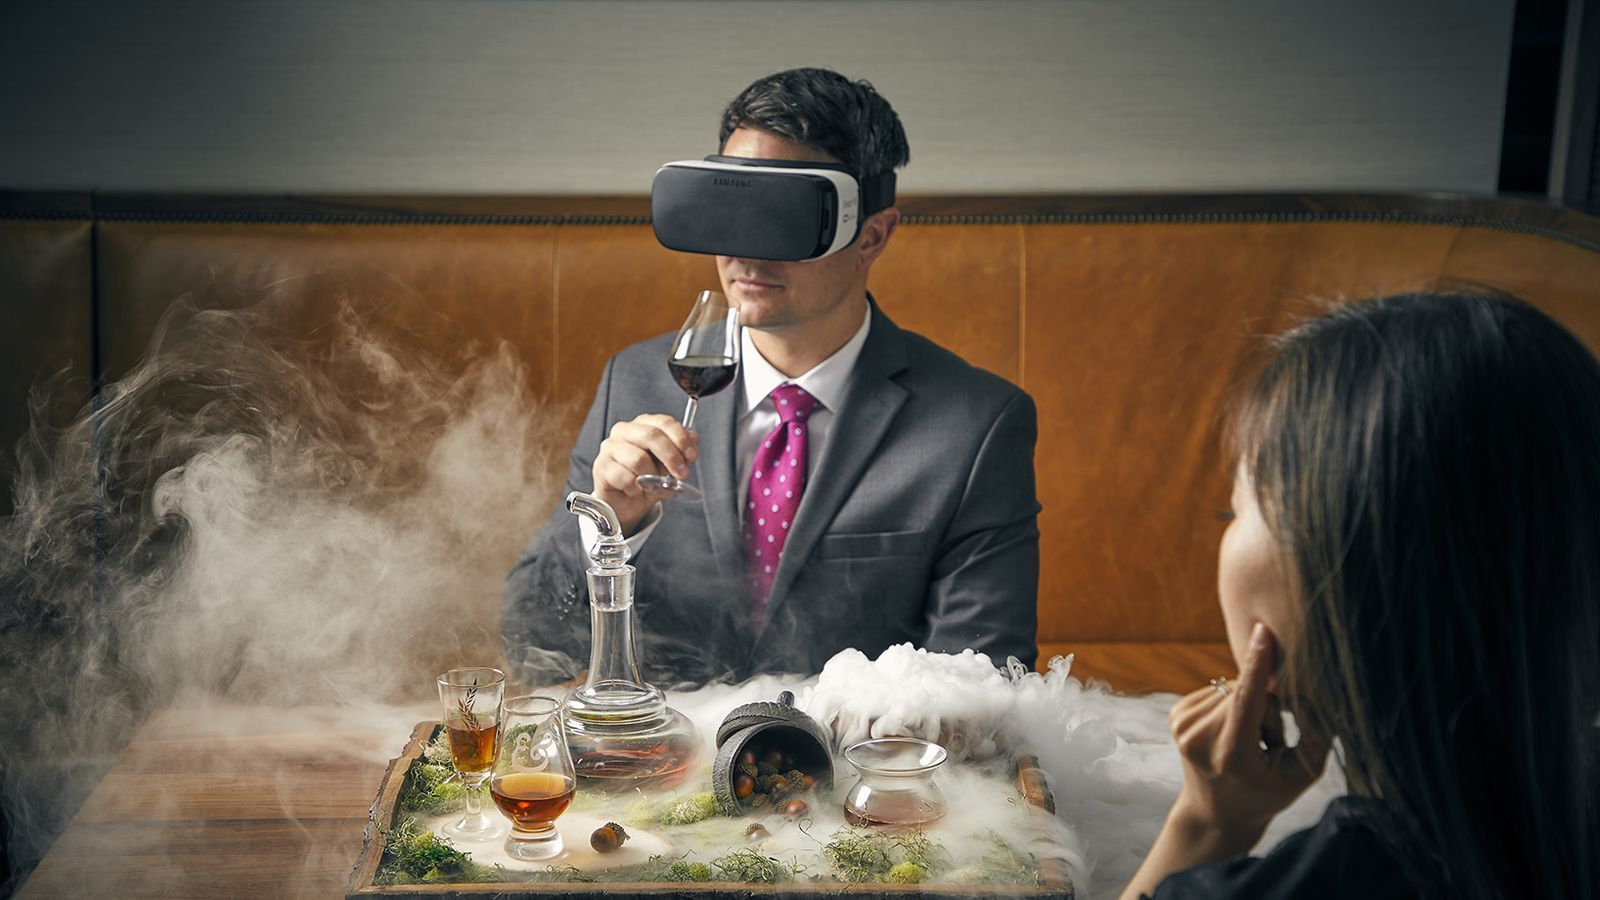 Chicago Restaurant Launches $95 Virtual Reality Scotch Cocktail Using Oculus Headset photo